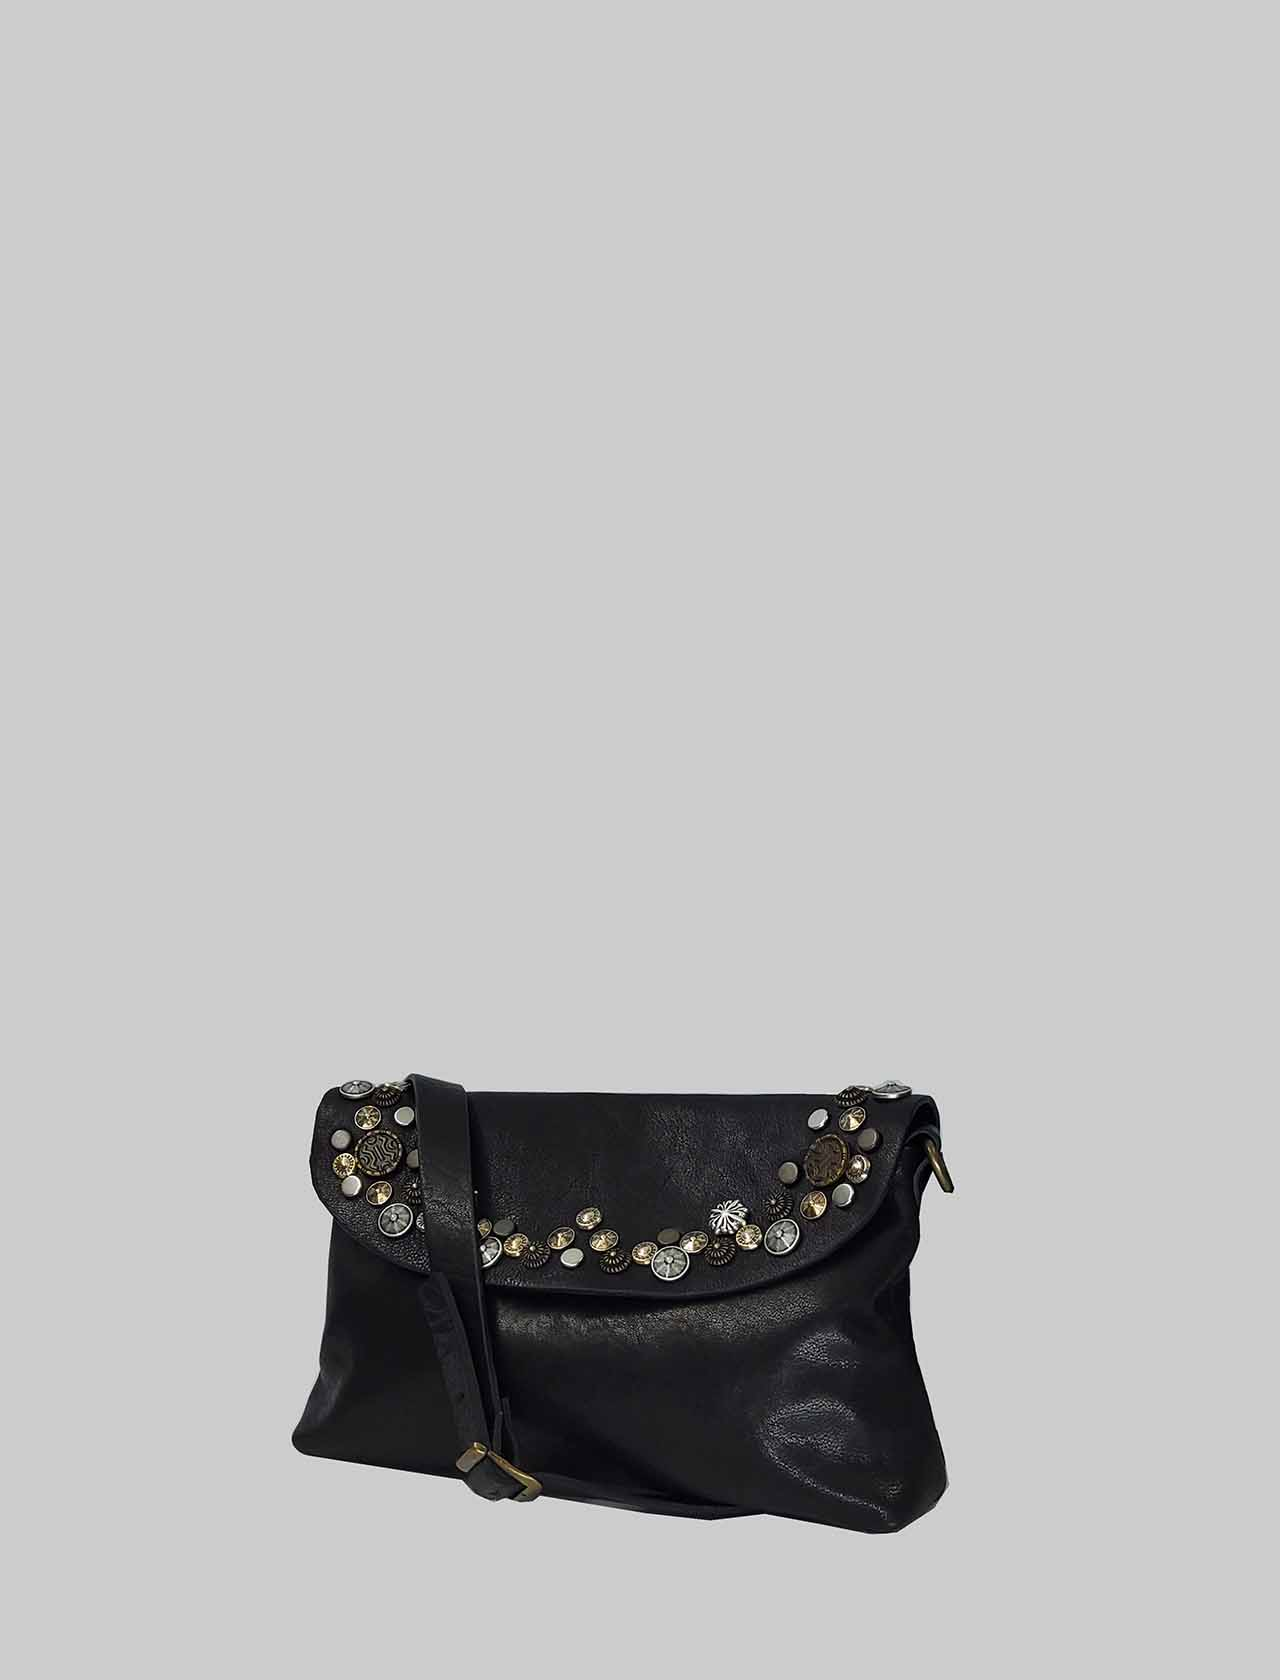 Women's Bag Small Clutch Bag in Black Leather with Studs and Adjustable Leather Shoulder Strap Spatarella | Bags and backpacks | LOLA001